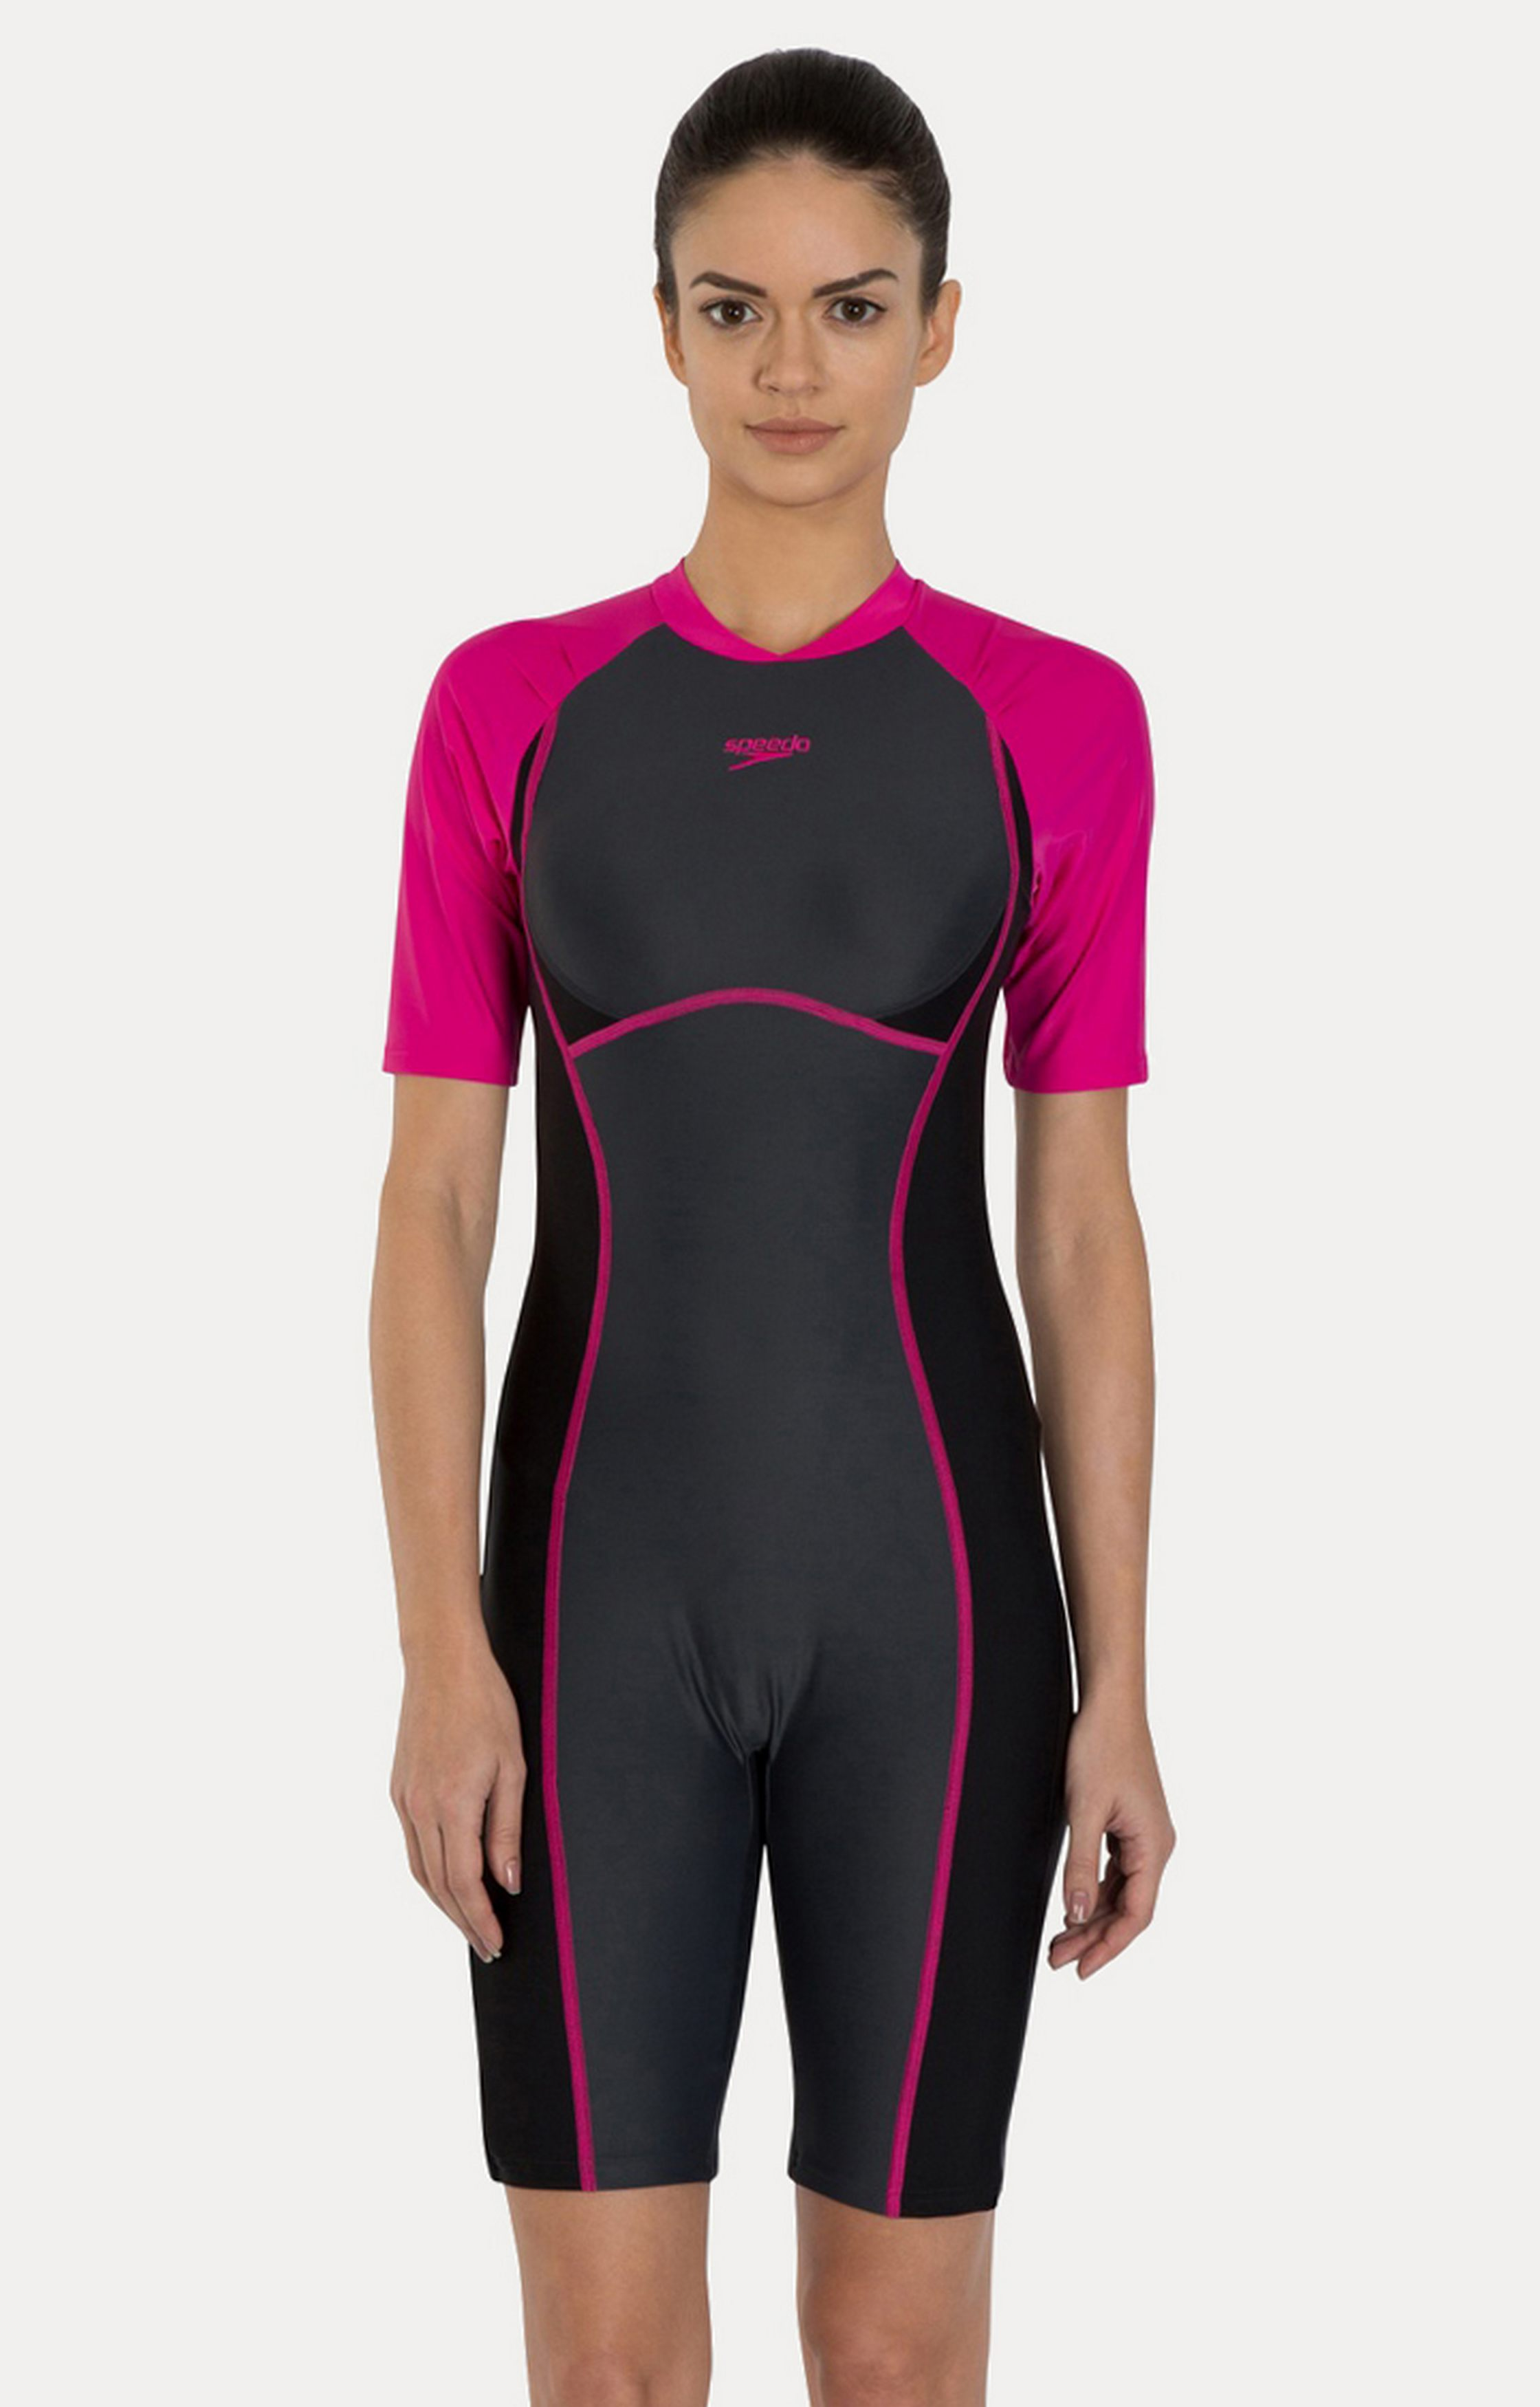 Speedo | Oxid Grey and Electric Pink Colourblock Swimsuit